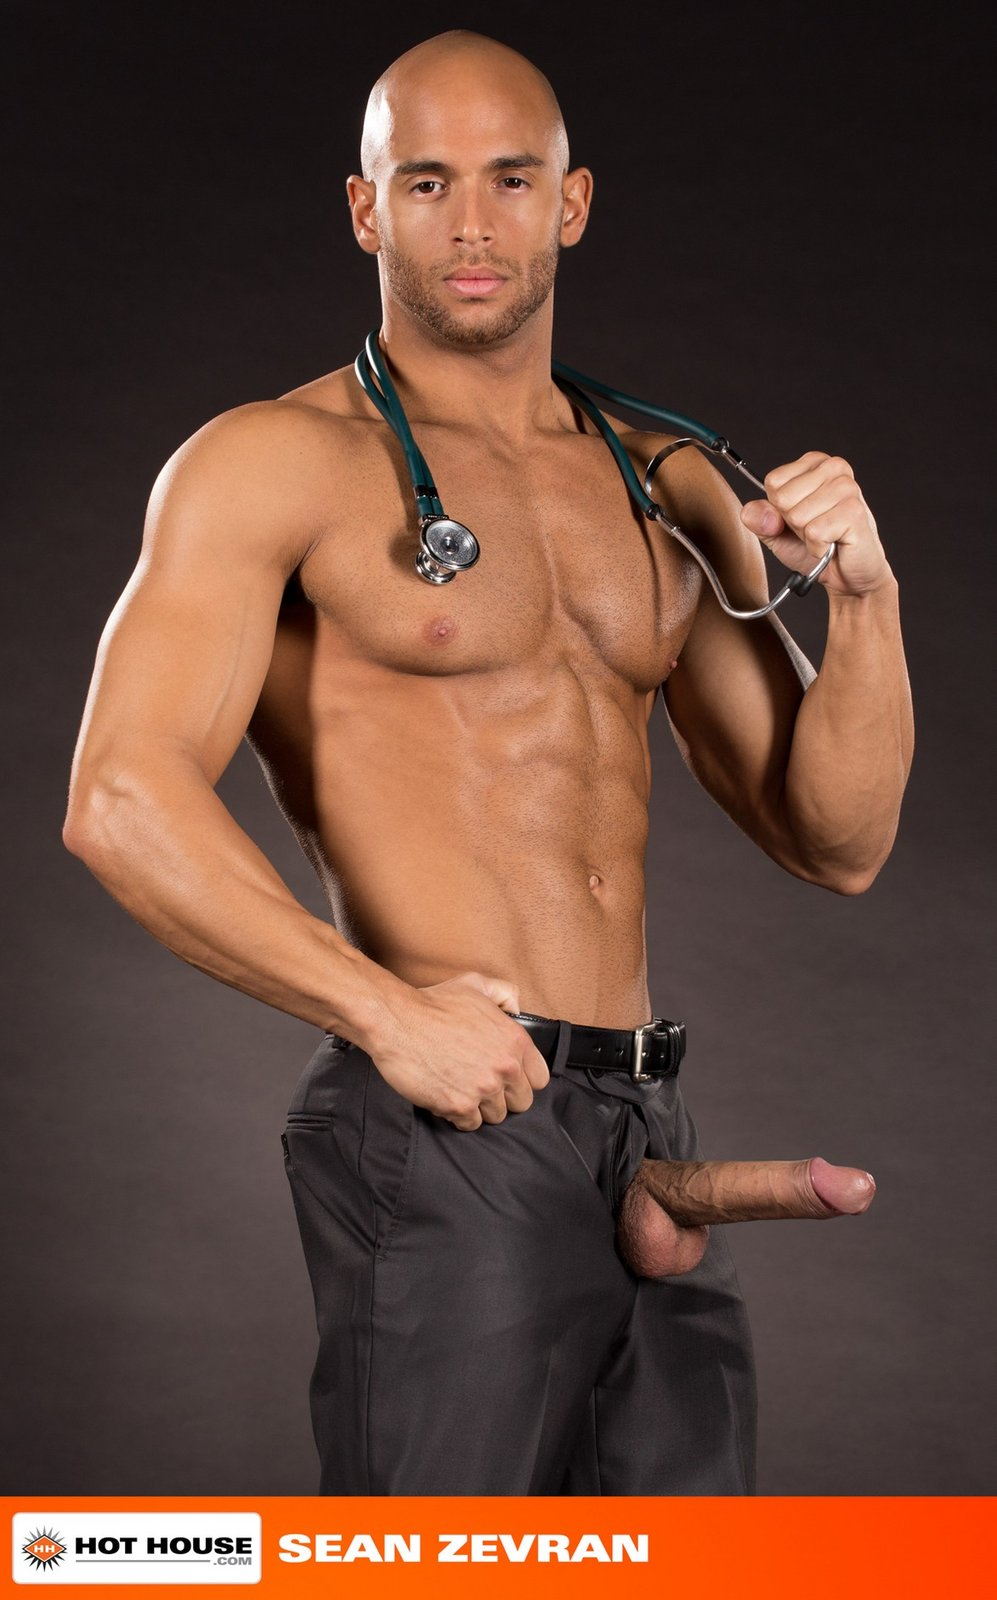 Gay sex photos doctors and doing